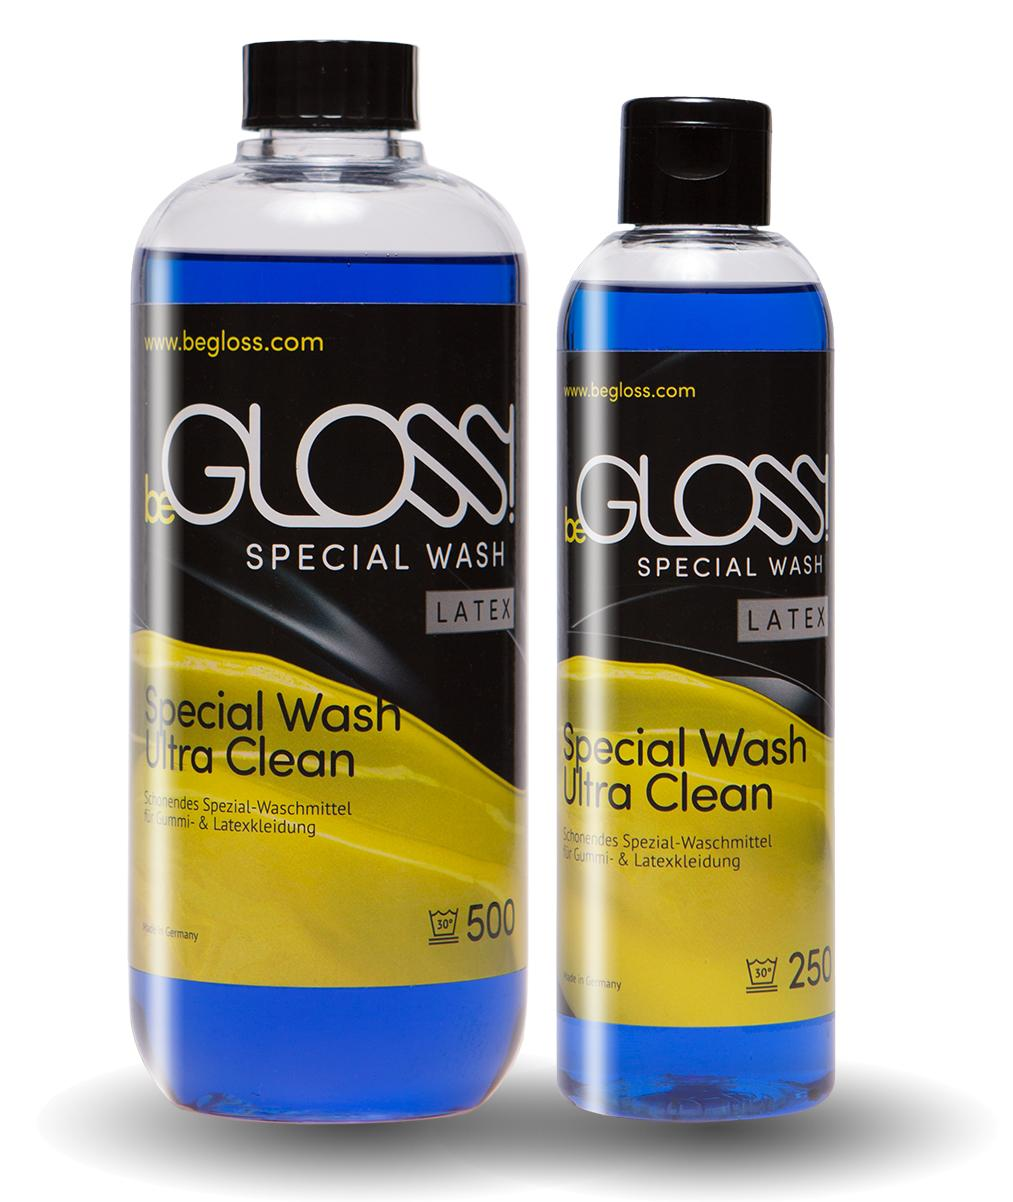 beGLOSS! SPECIAL WASH 250 ml